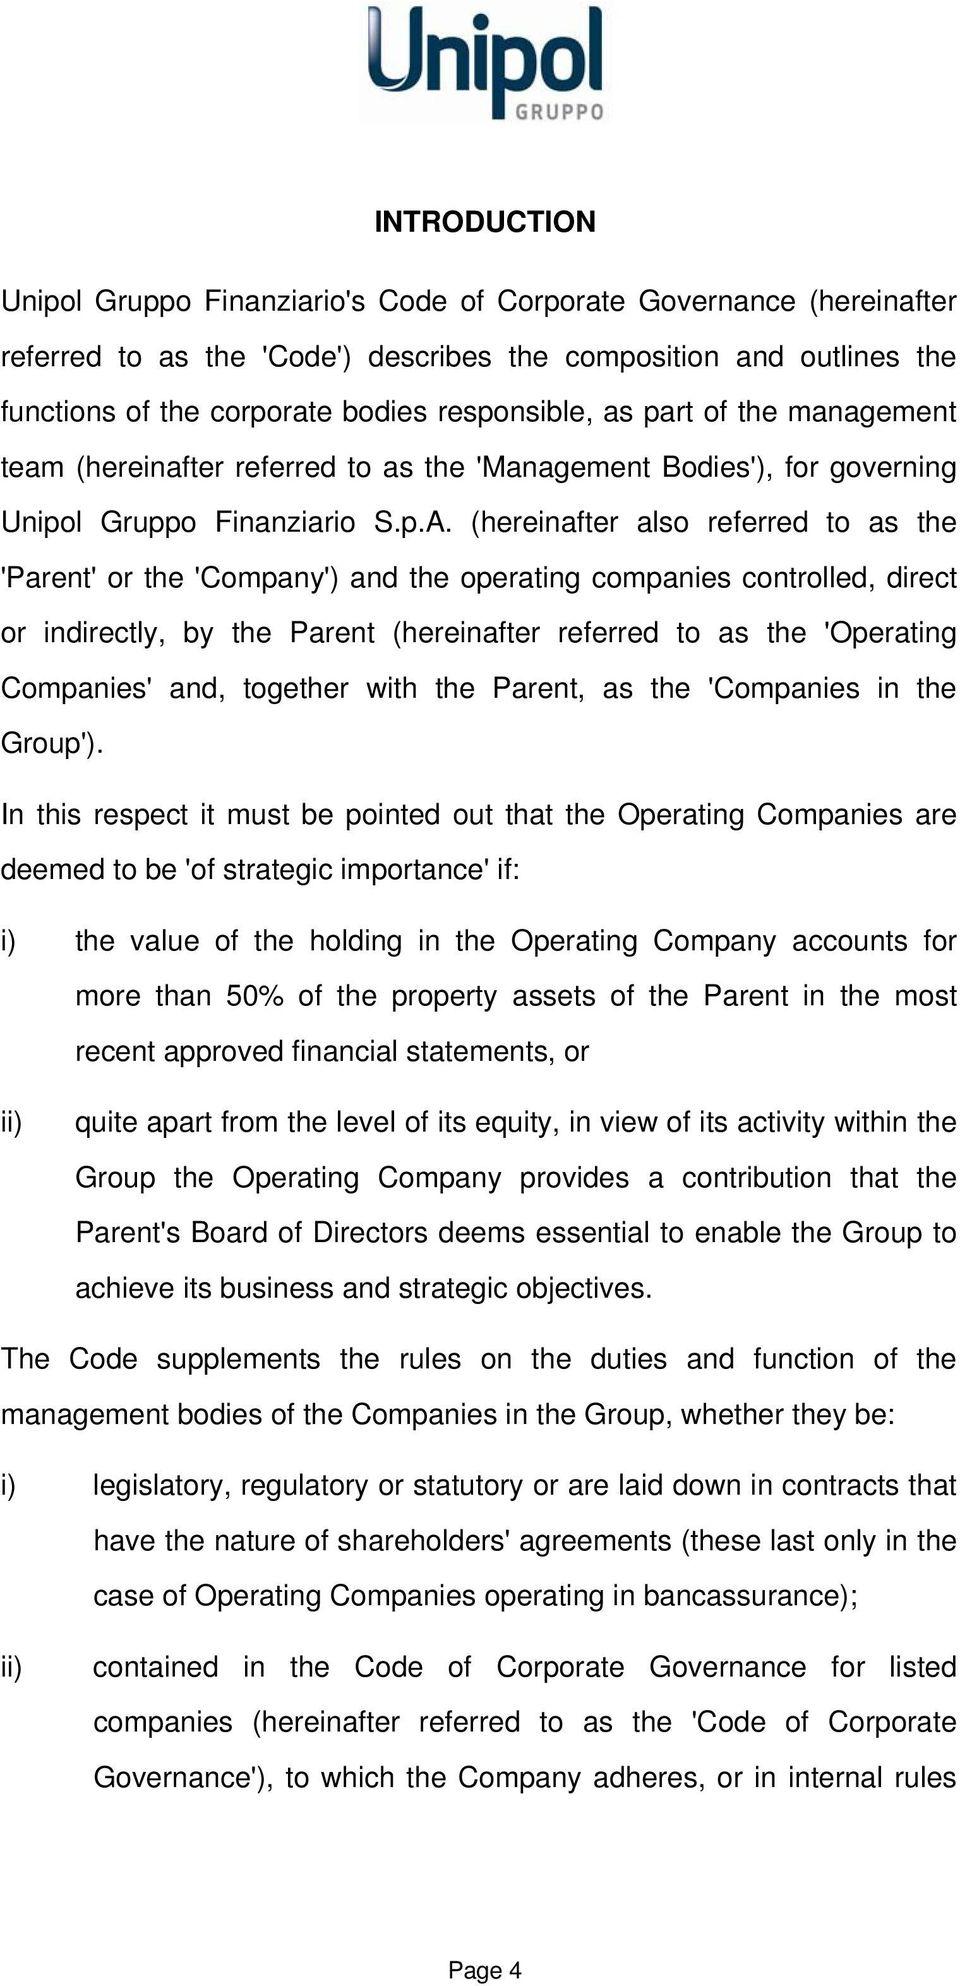 (hereinafter also referred to as the 'Parent' or the 'Company') and the operating companies controlled, direct or indirectly, by the Parent (hereinafter referred to as the 'Operating Companies' and,